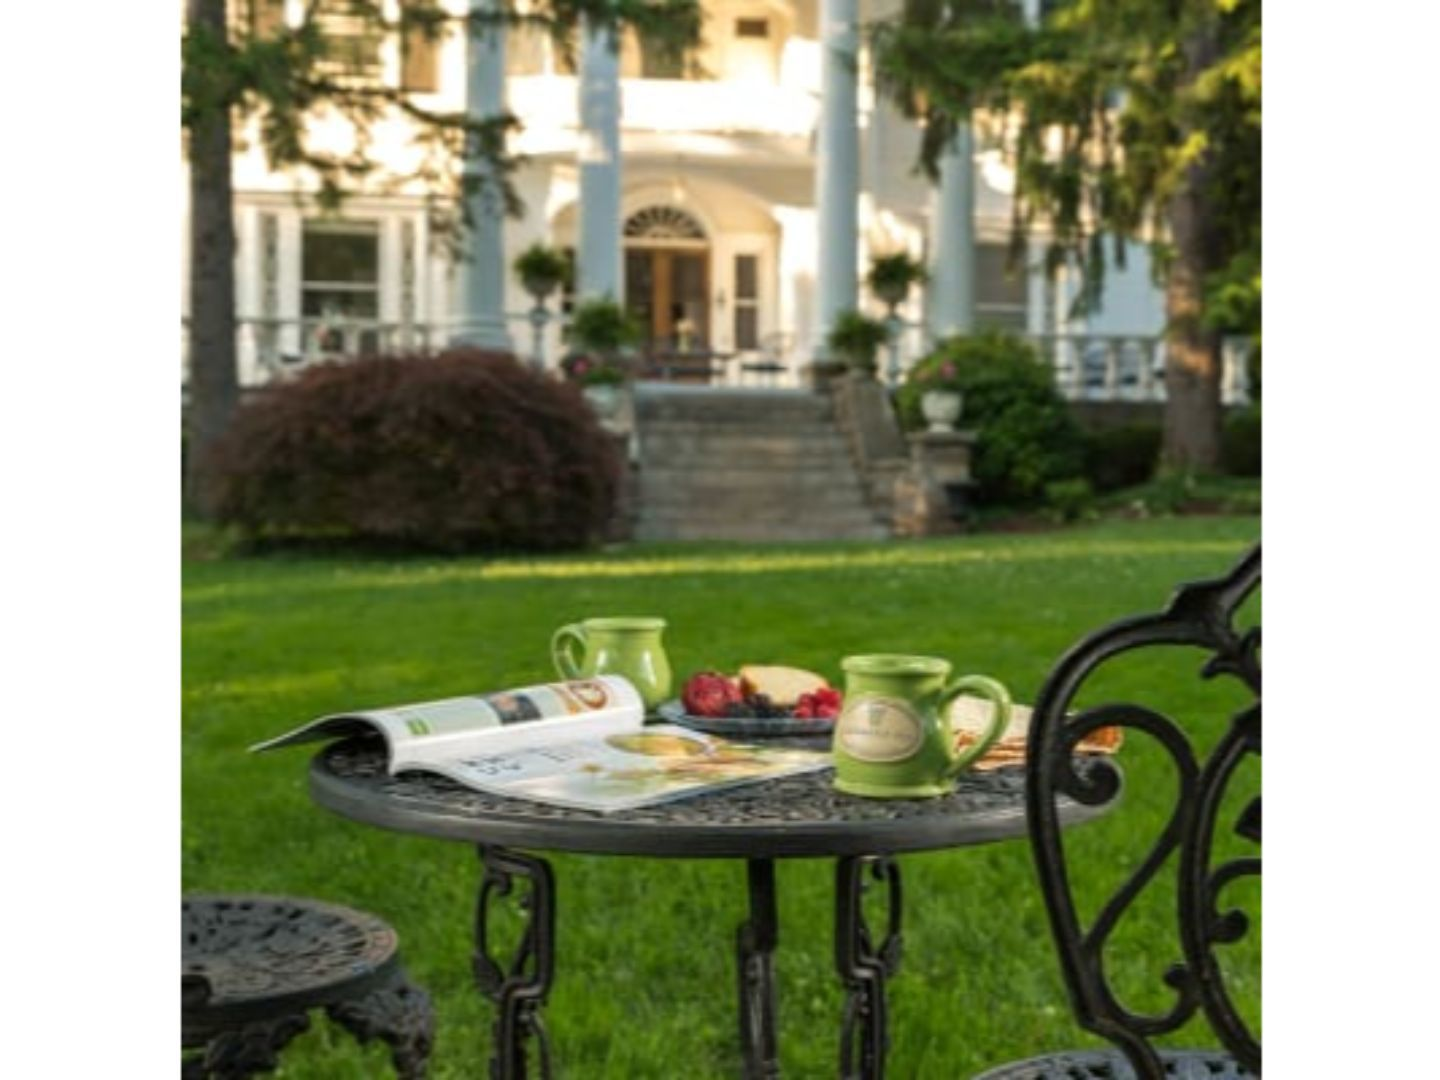 A couple of lawn chairs sitting on top of a table at Albemarle Inn.